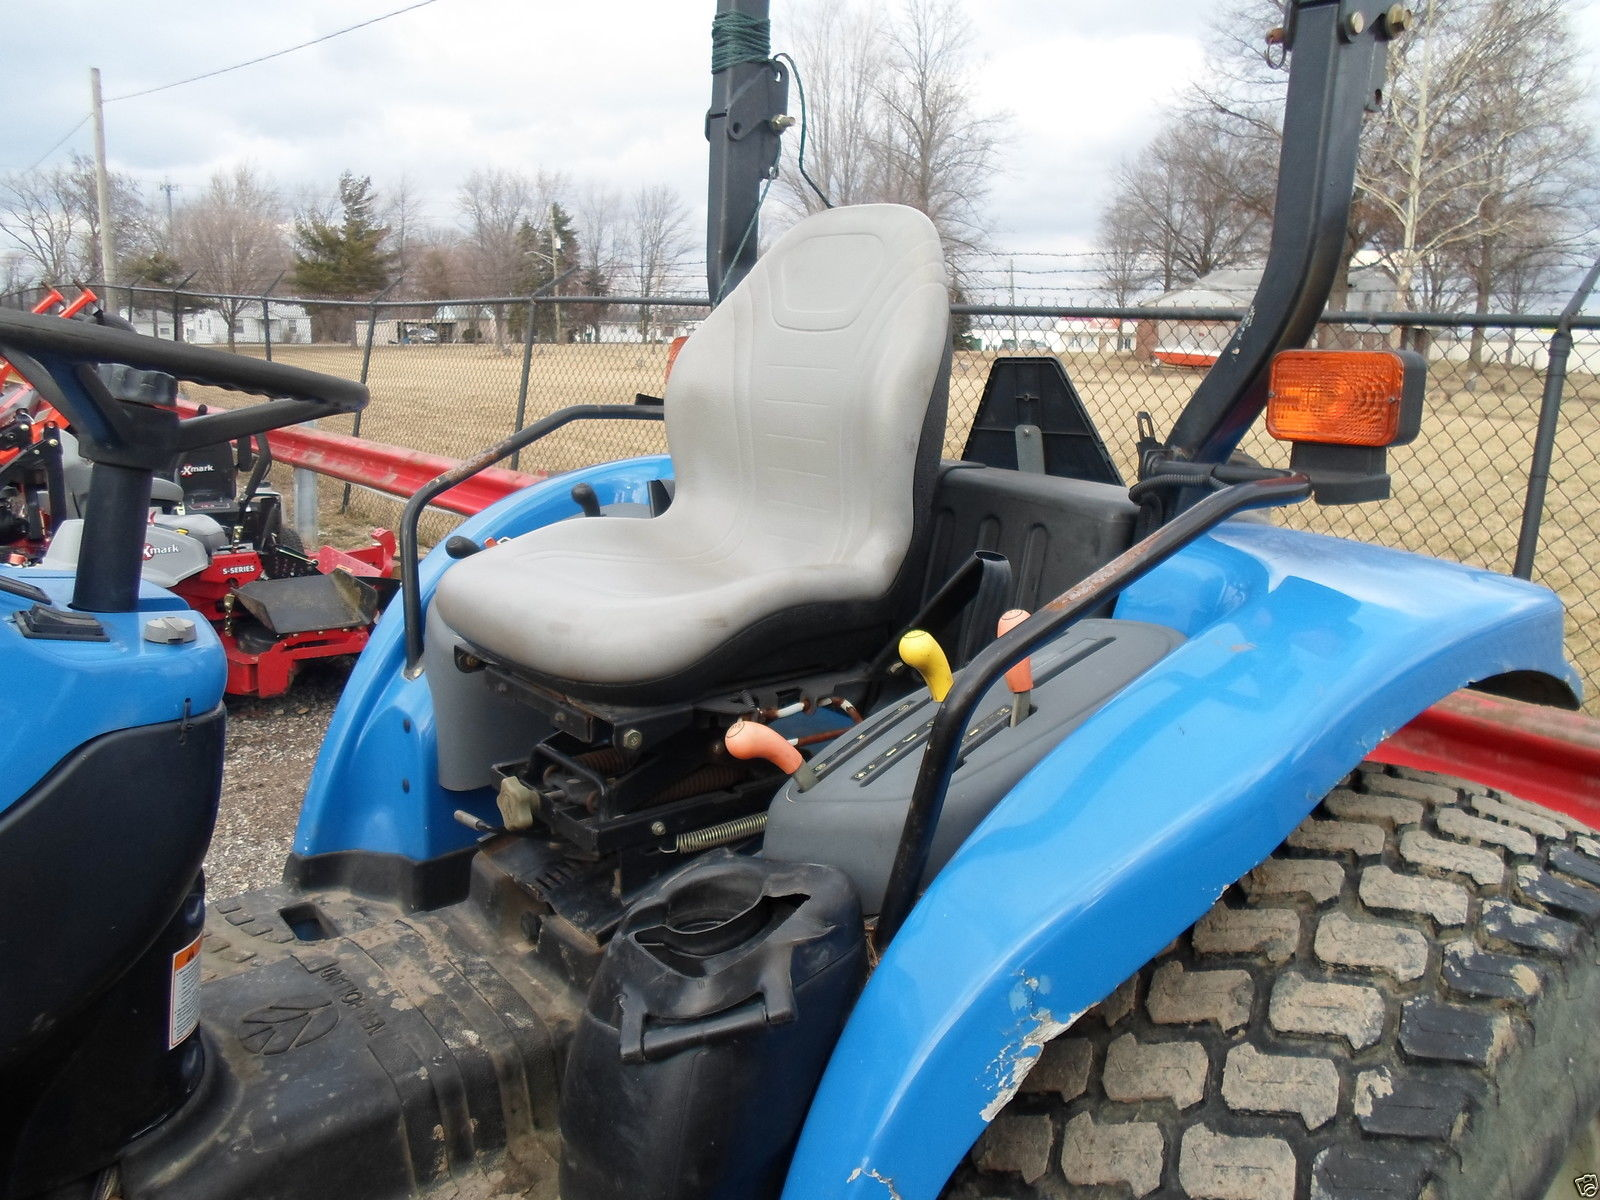 GRAY SEAT FORD NEW HOLLAND TC TRACTOR TC40DTC45TC40DATC45DATC48DATC55DA EF 161210971716 10 new holland tc40d wiring diagram new holland tools, new holland new holland tc40 wiring diagram at suagrazia.org